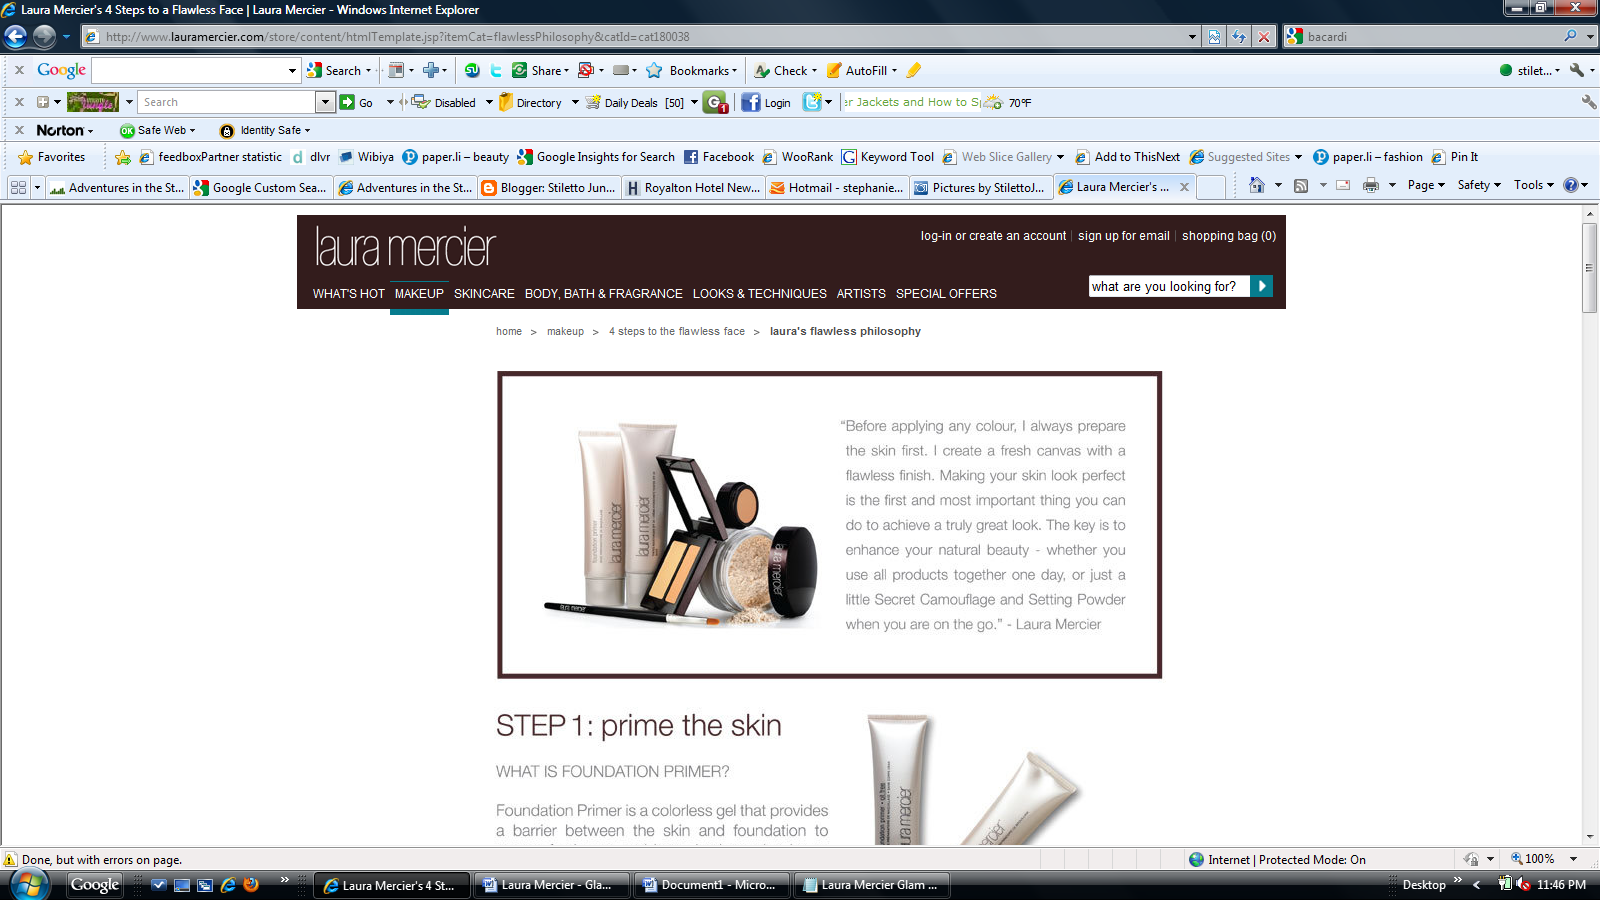 Laura Mercier Flawless Face - The Flawless Face Philosophy